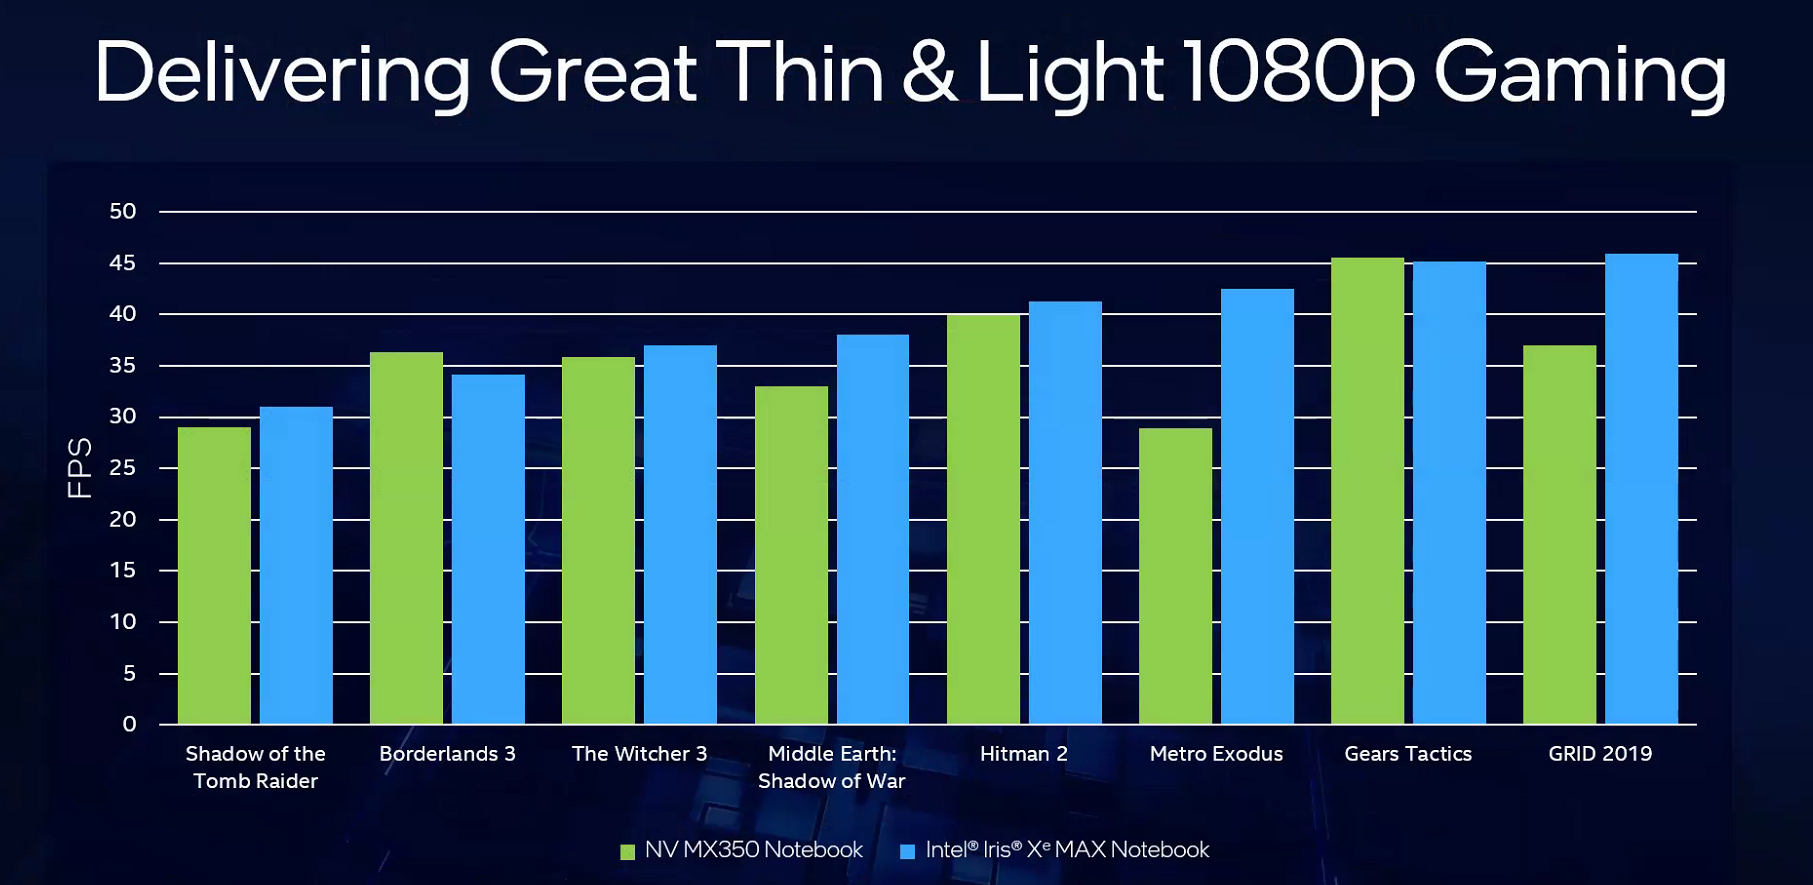 According to Intel's benchmarks, the Iris Xe Max generally matches or outperforms NVIDIA's MX350 on light 1080p gaming with selected titles.